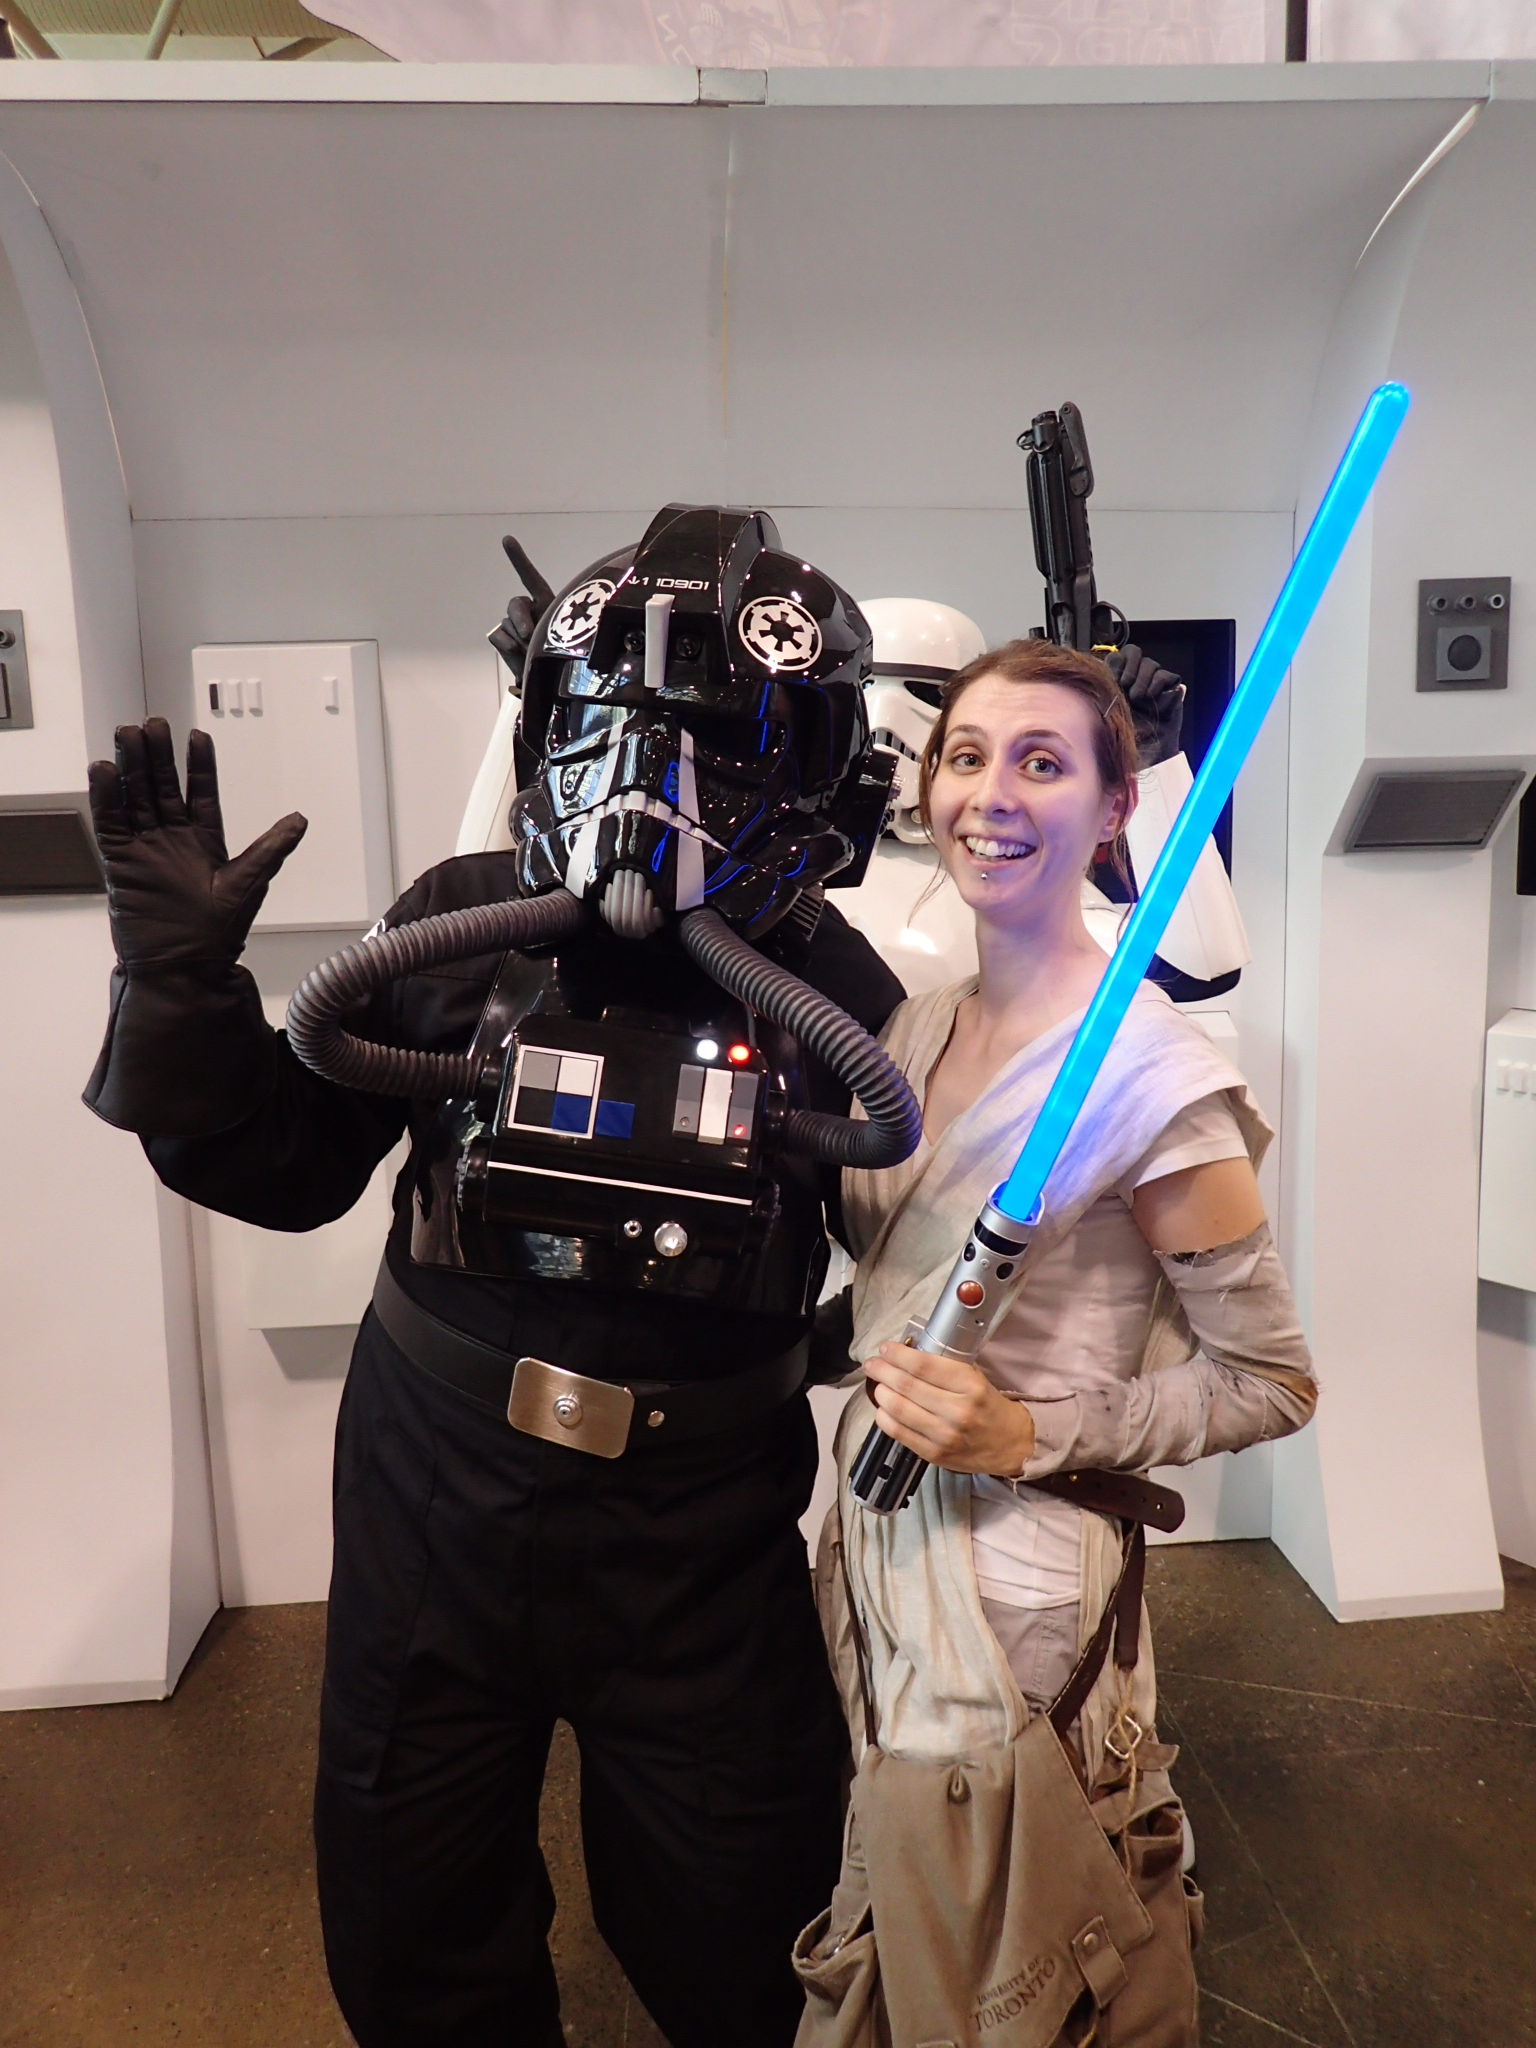 I got a hug from a TIE fighter pilot, which was pretty much a bucket list moment right there.